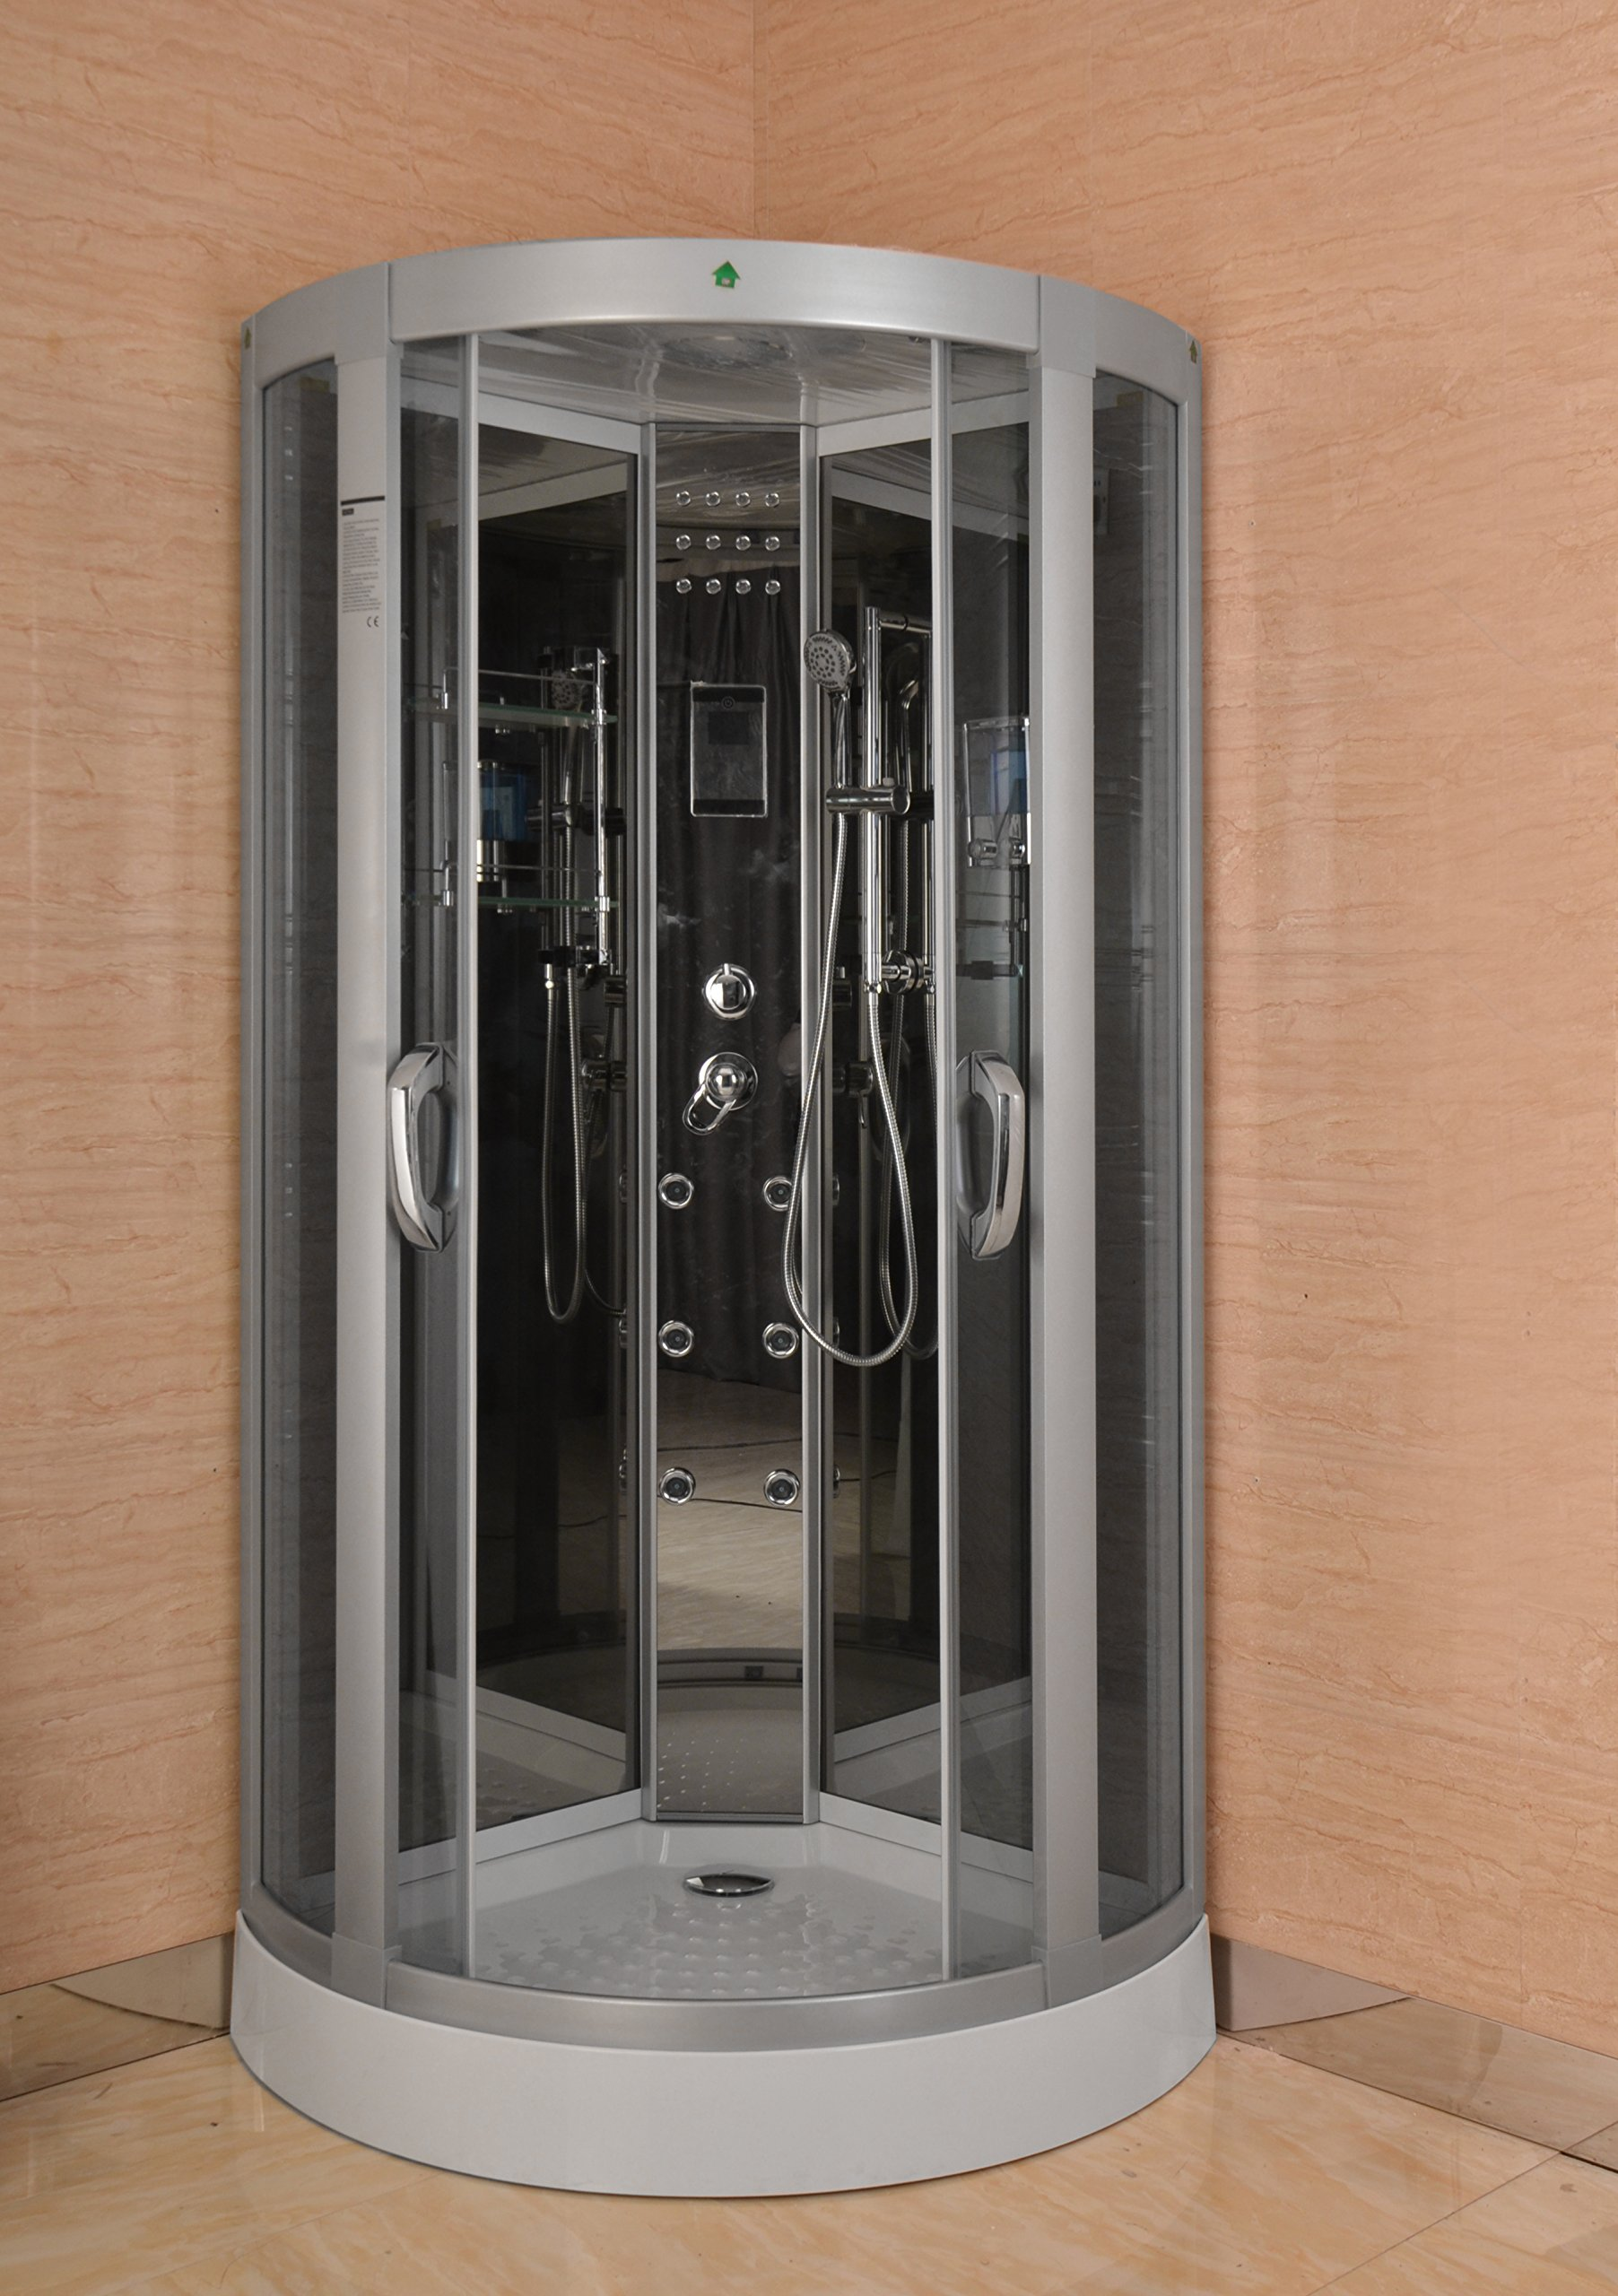 Luxury Kokss 9040 Shower enclosure 36'' x 36'' Multi function hand shower overhead rain, 3 body massage jets and LED Lights with touch screen computer by bath masters (Image #1)